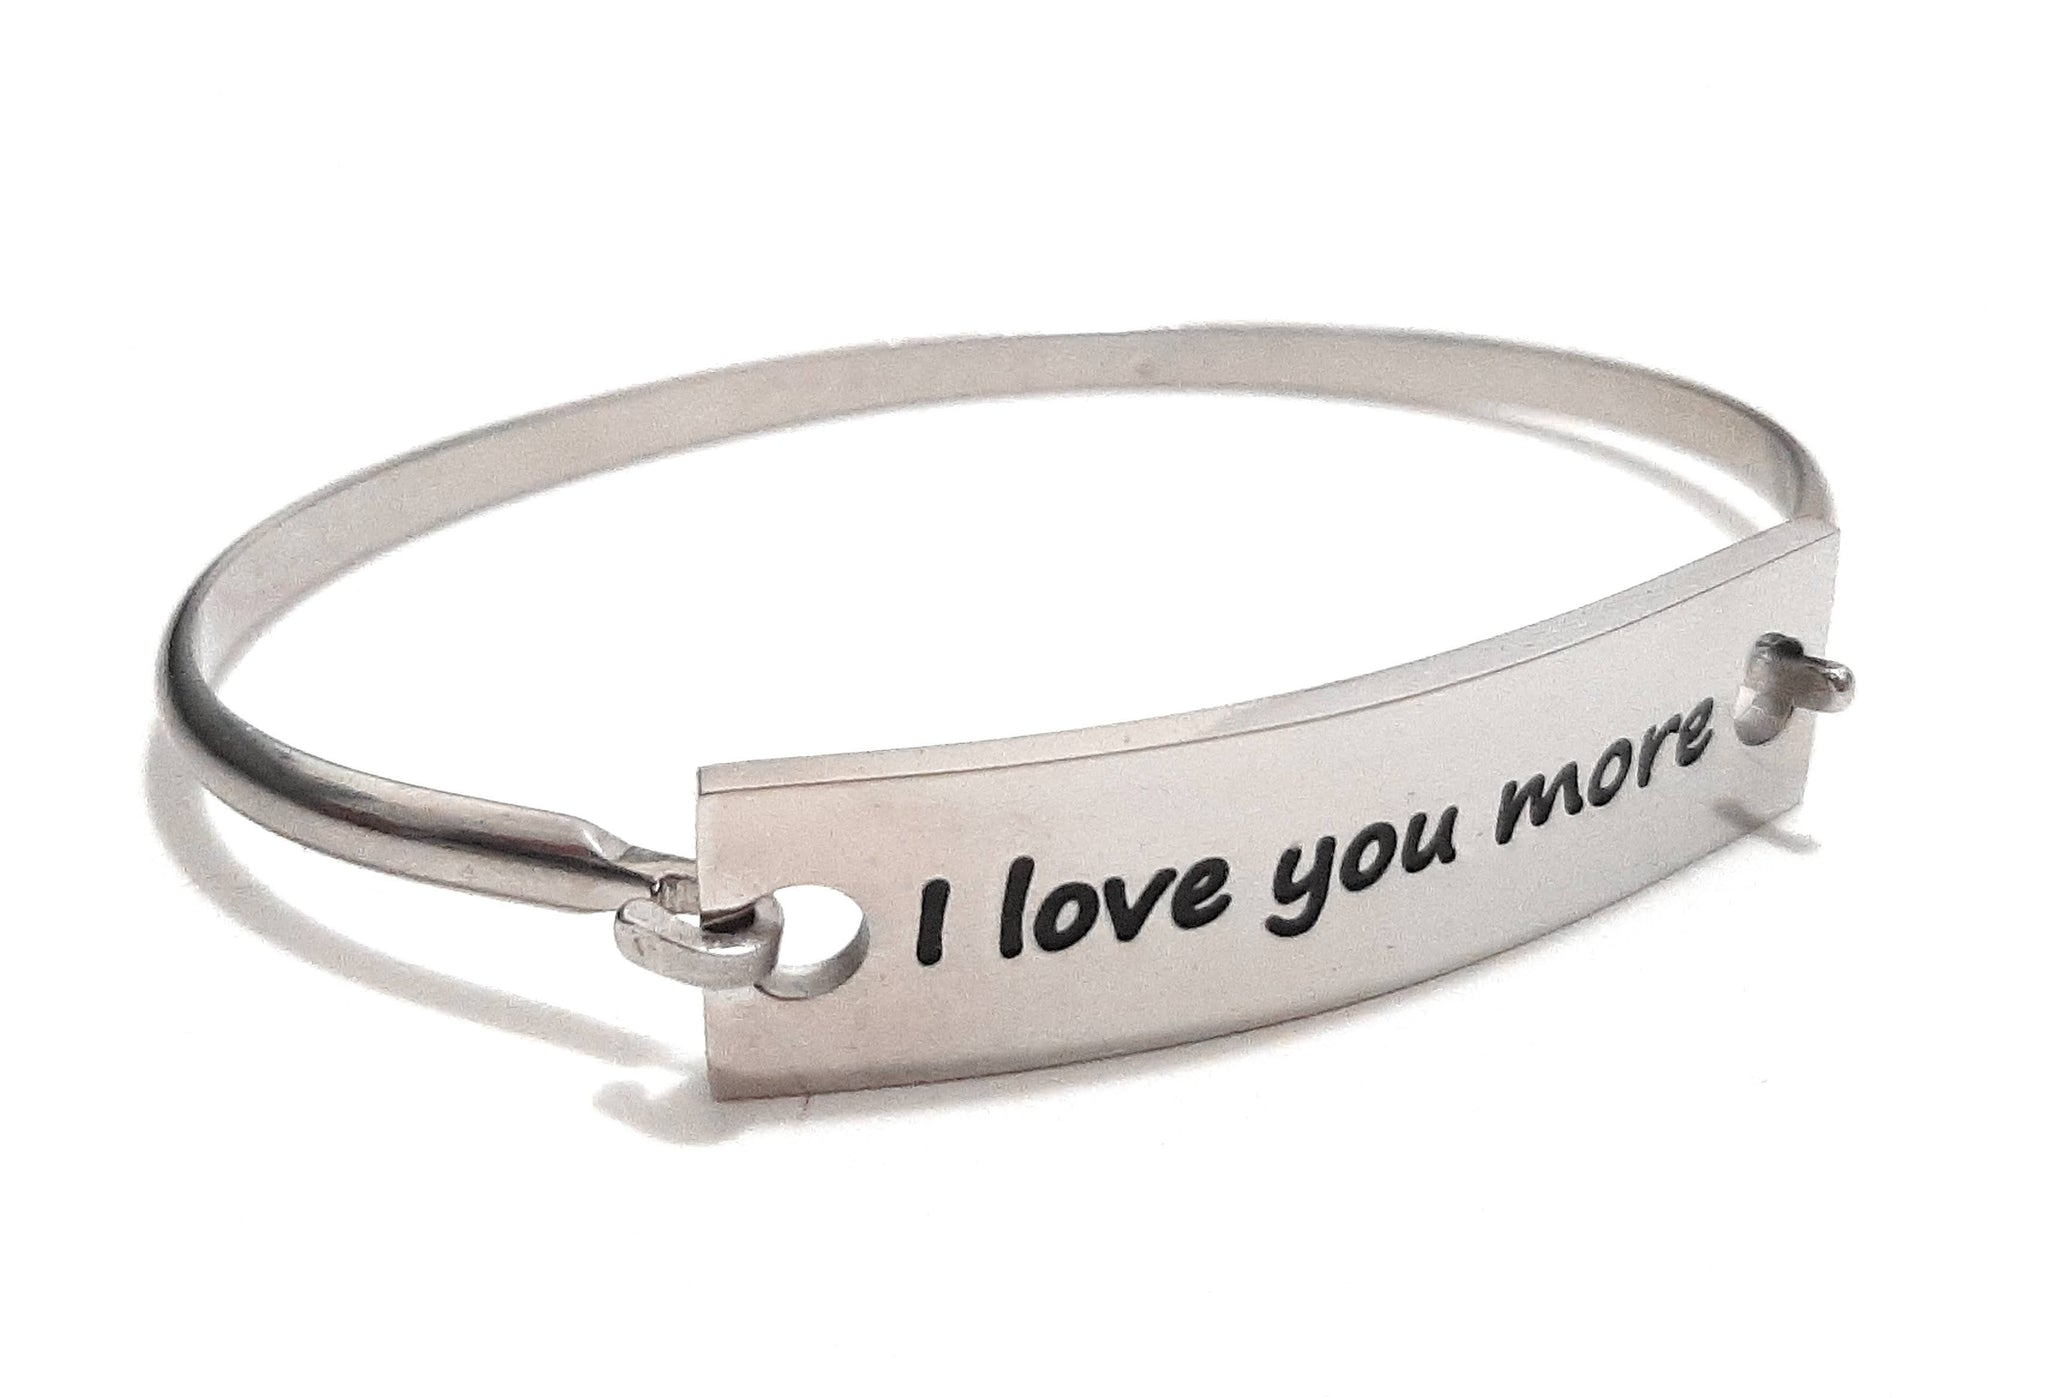 Stainless Steel Inspirational Message Connector Bangle Bracelet - I love you more